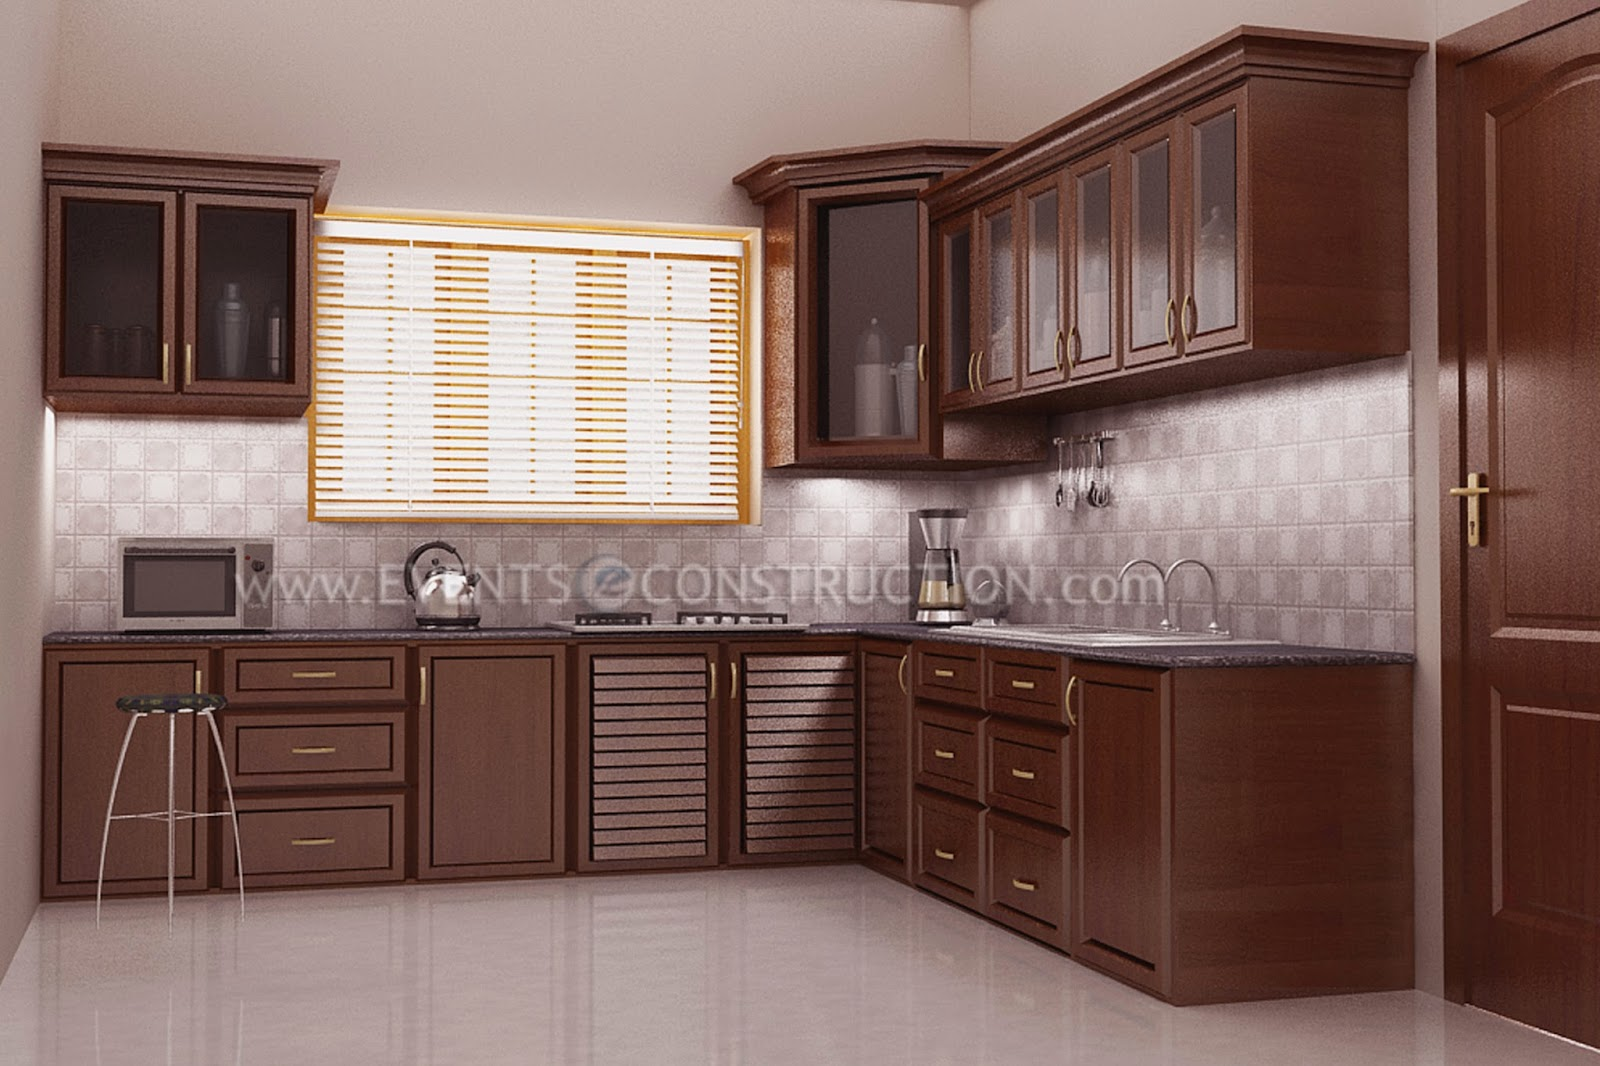 Evens construction pvt ltd kitchen design with wooden for Model kitchen design